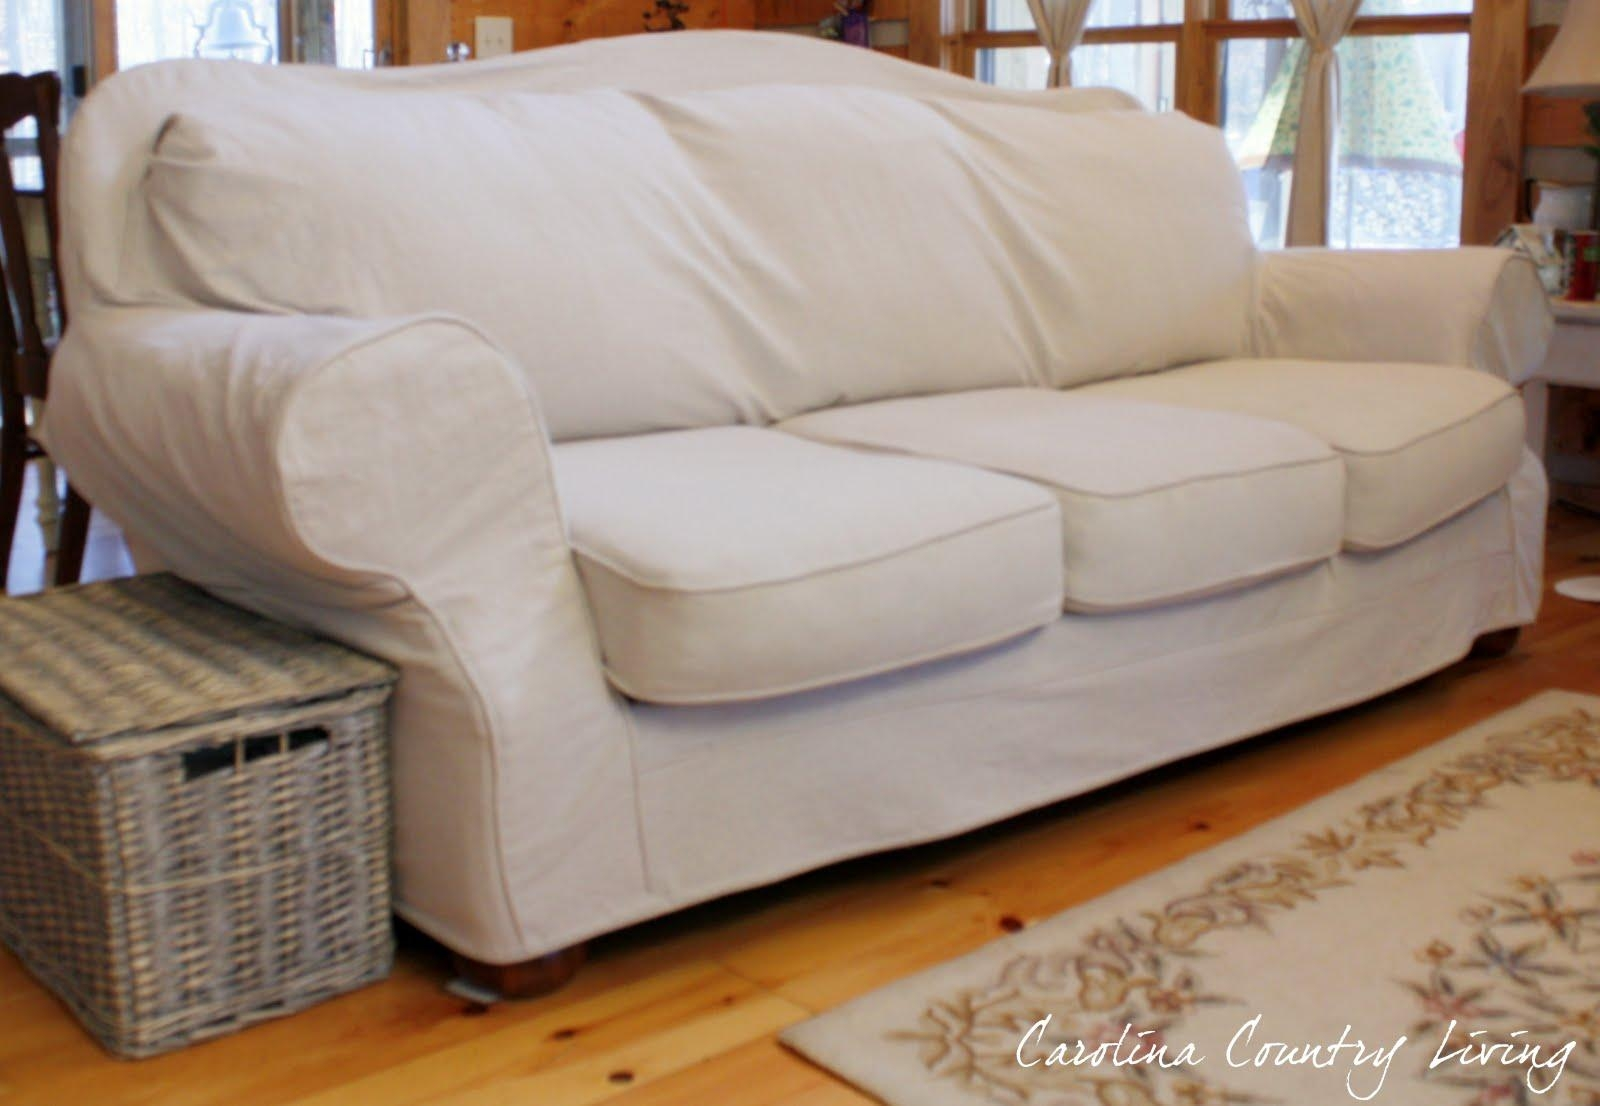 Sofas Center : Cushion Sofa Slipcovers T Style Camel Back Within Camel Back Couch Slipcovers (Image 16 of 20)